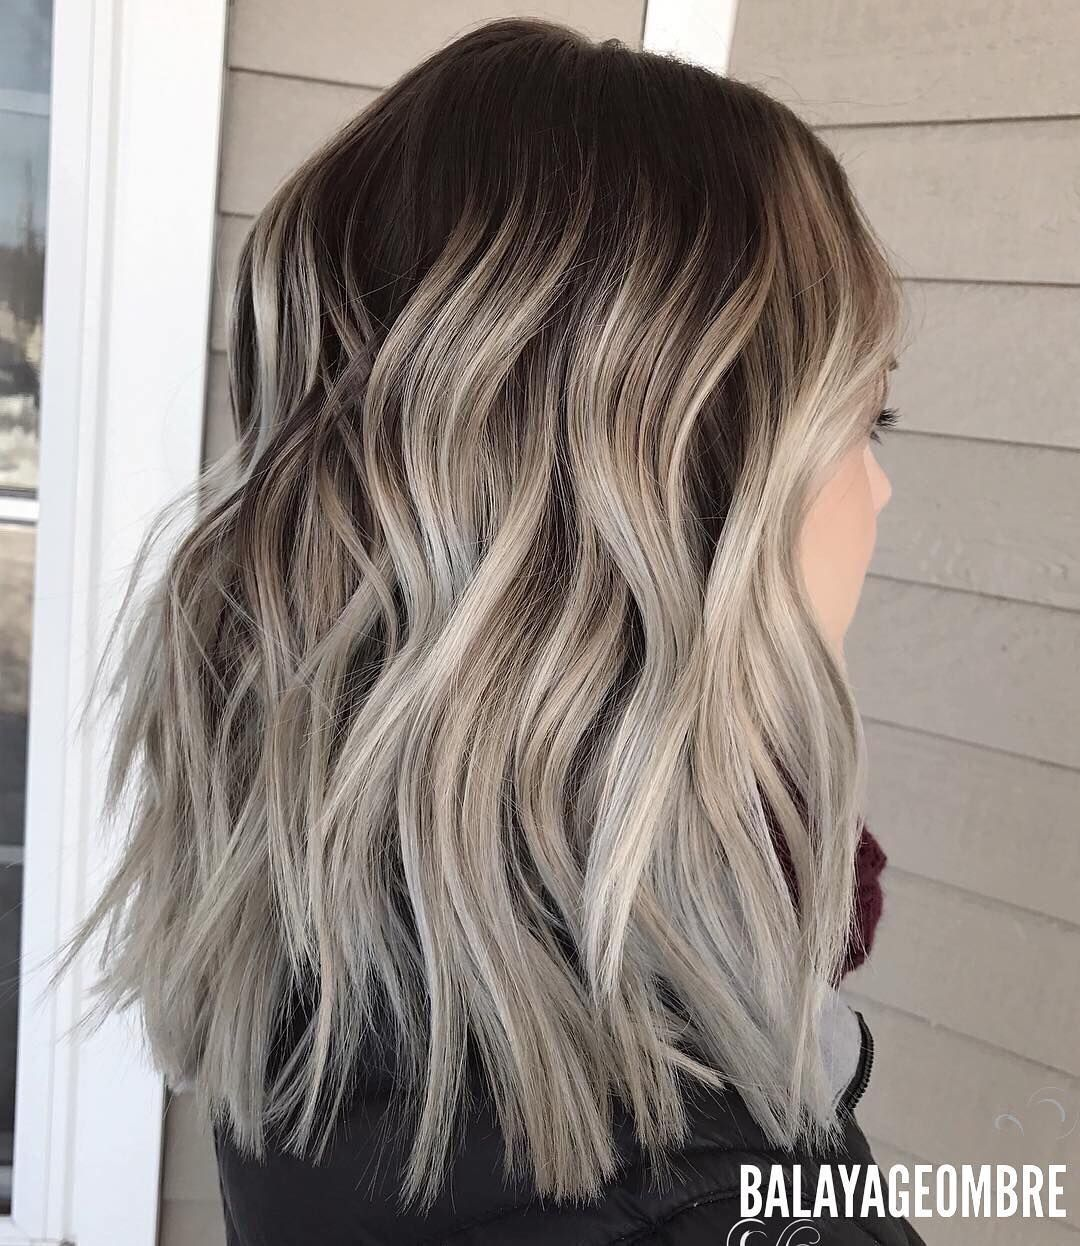 10 Best Medium Layered Hairstyles 2020 Brown Ash Blonde Fashion Colors Ash Blonde Hair Colour Medium Length Hair Styles Medium Hair Styles